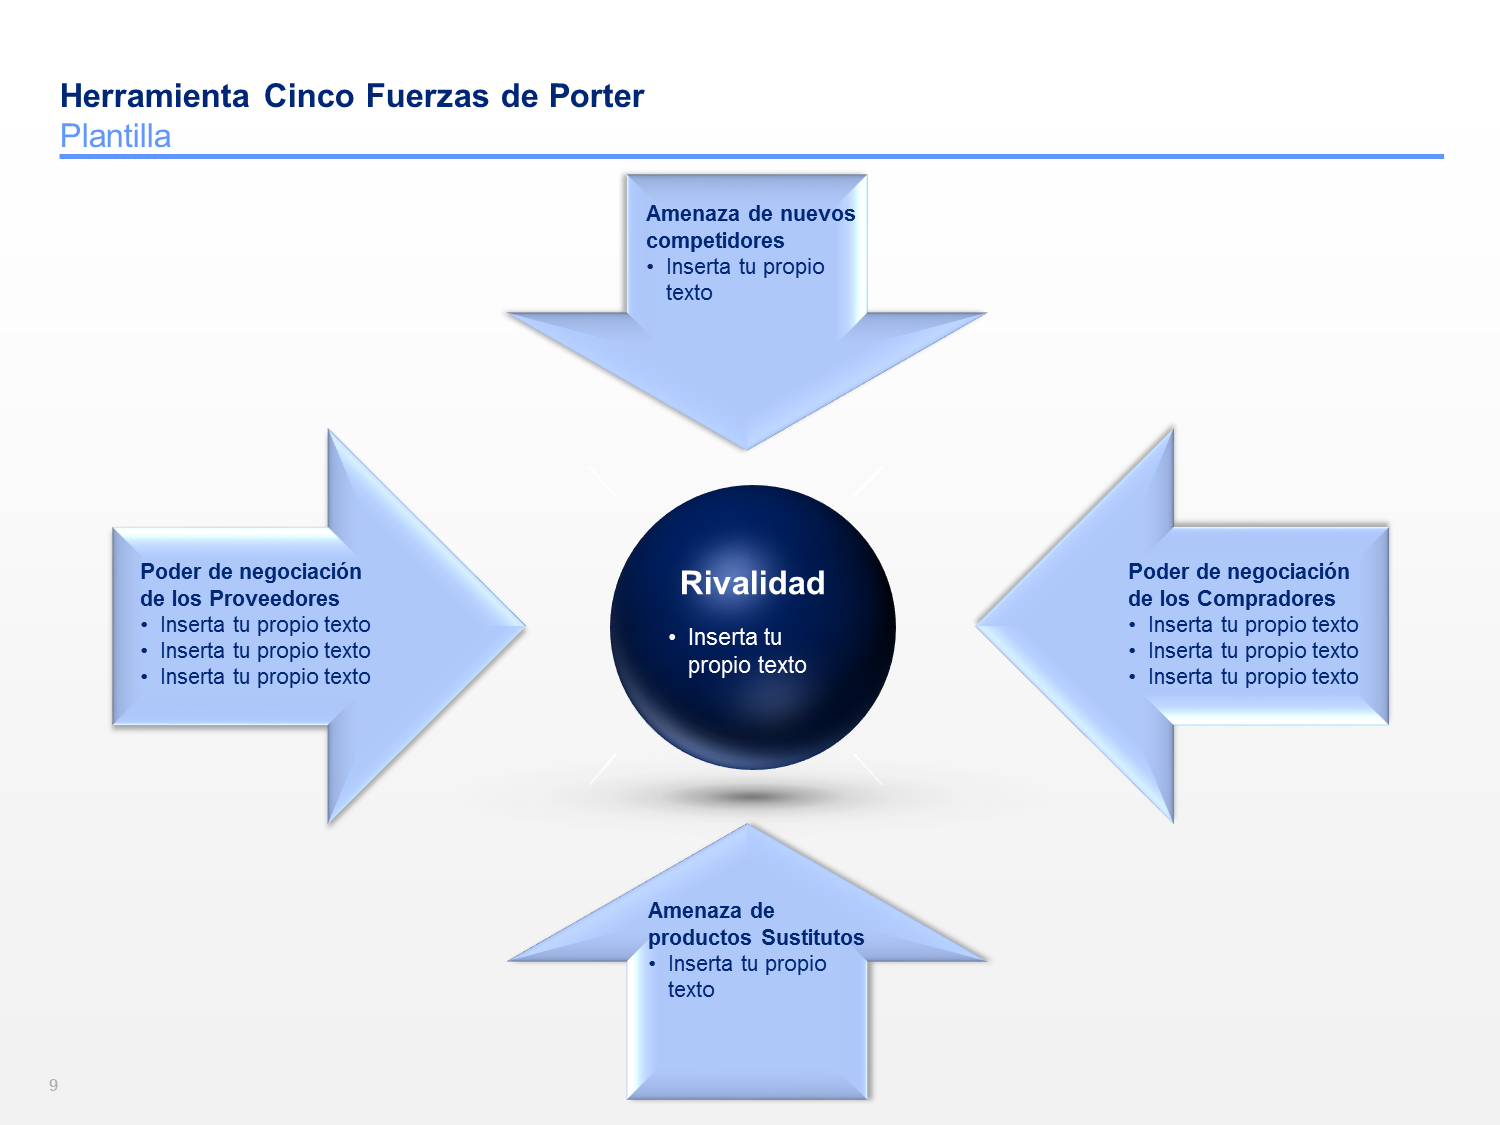 porter's five forces analysis of sbi Porter regarded understanding both the competitive forces and the overall industry structure as crucial for effective strategic decision-making there are several examples of how porter's five forces can be applied to various industries online as an example, stock analysis firm trefis looked at how under.